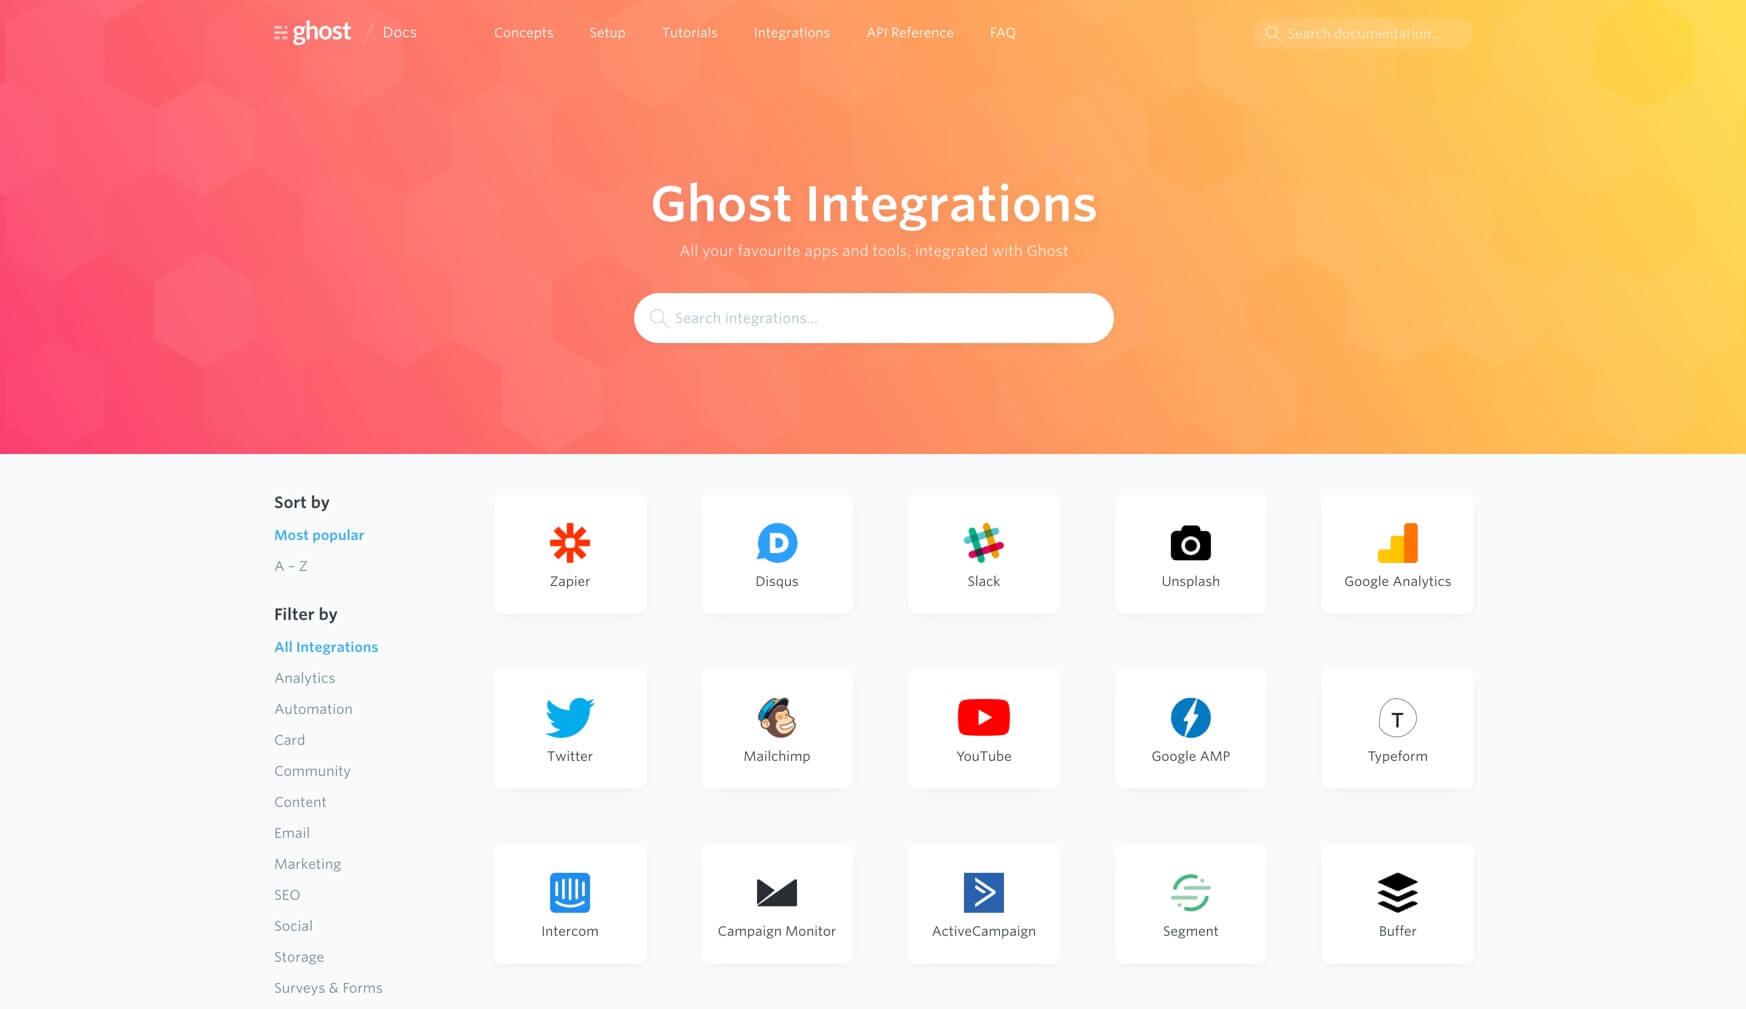 Ghost integrations